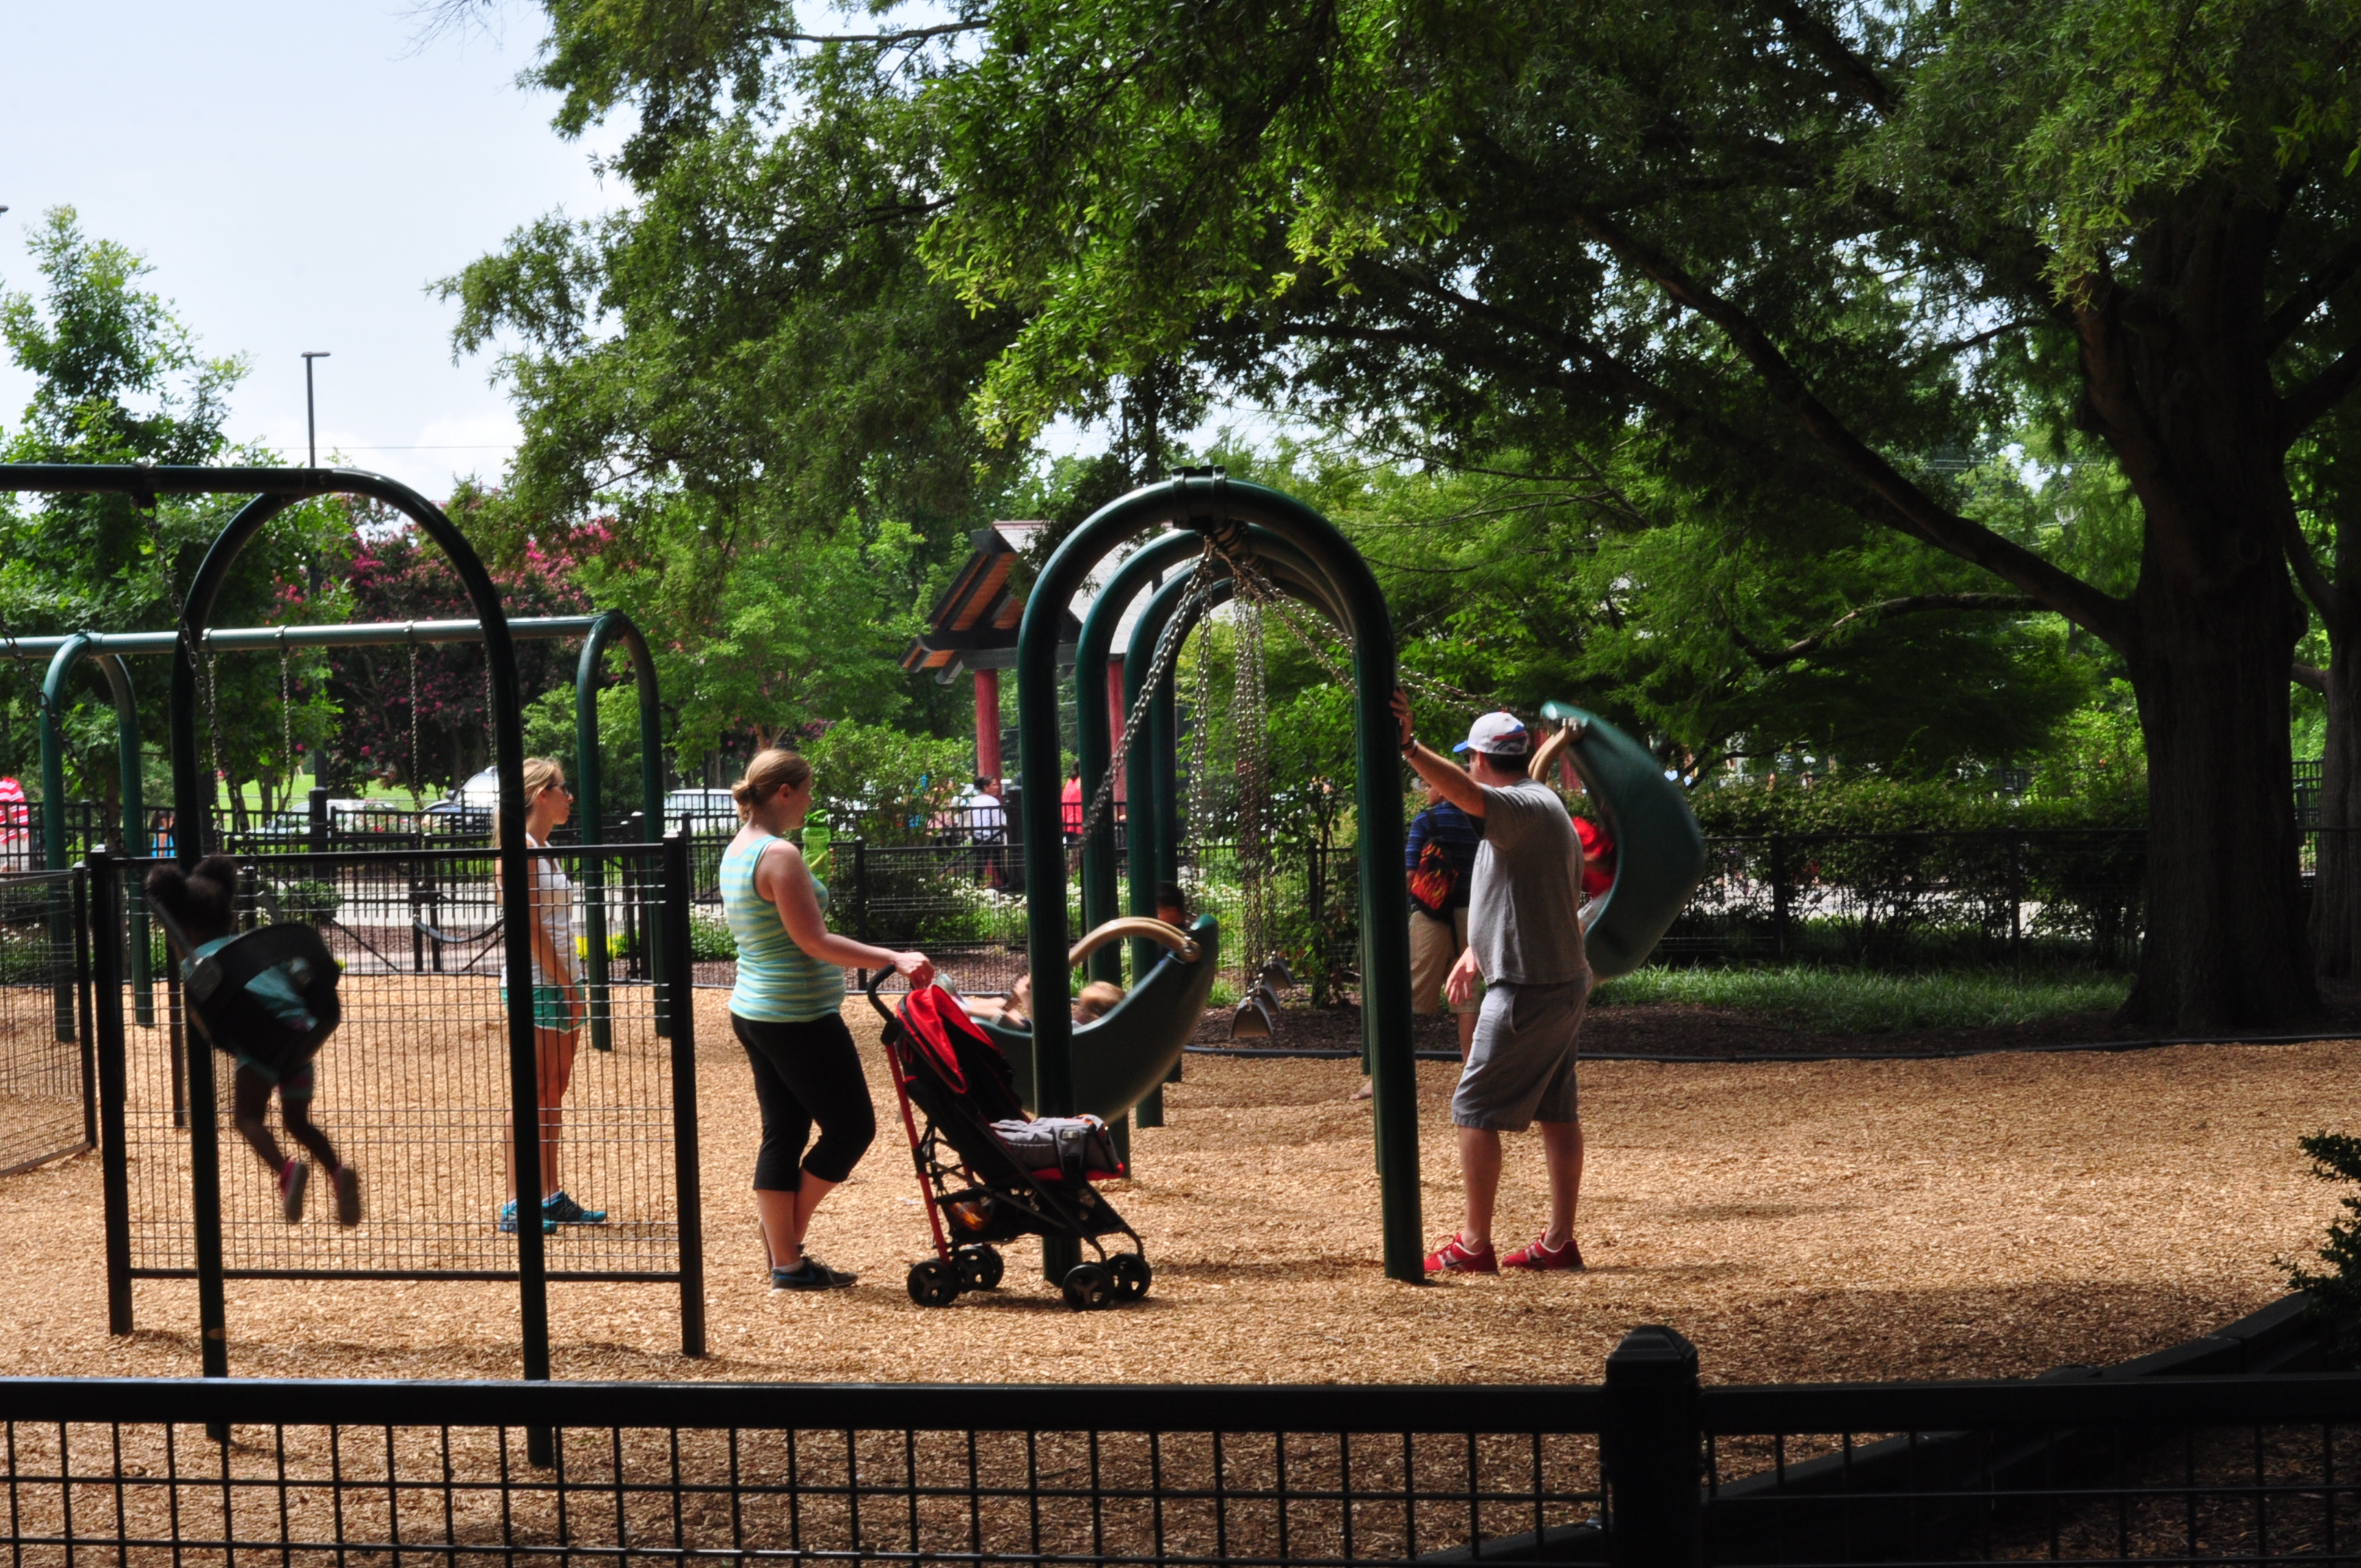 The playground at Pullen Park.